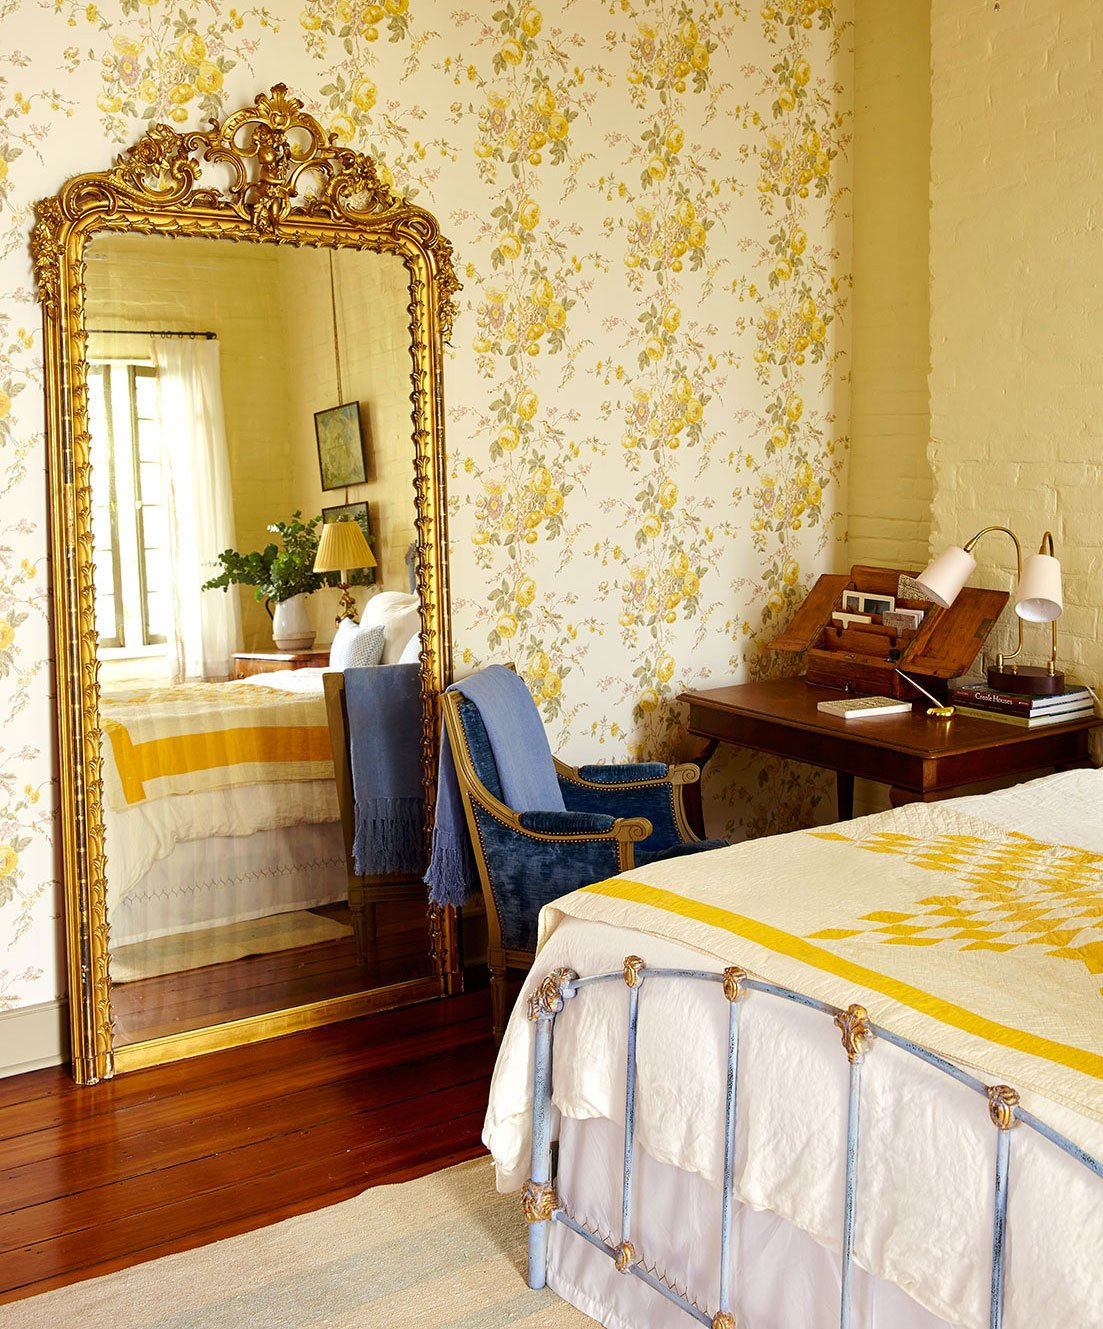 Bedroom, Dresser, Bed, Wardrobe, Medium Hardwood Floor, Ceiling Lighting, and Table Lighting New Orlean's style antiques throughout the home.  Antoine Bordeaux House